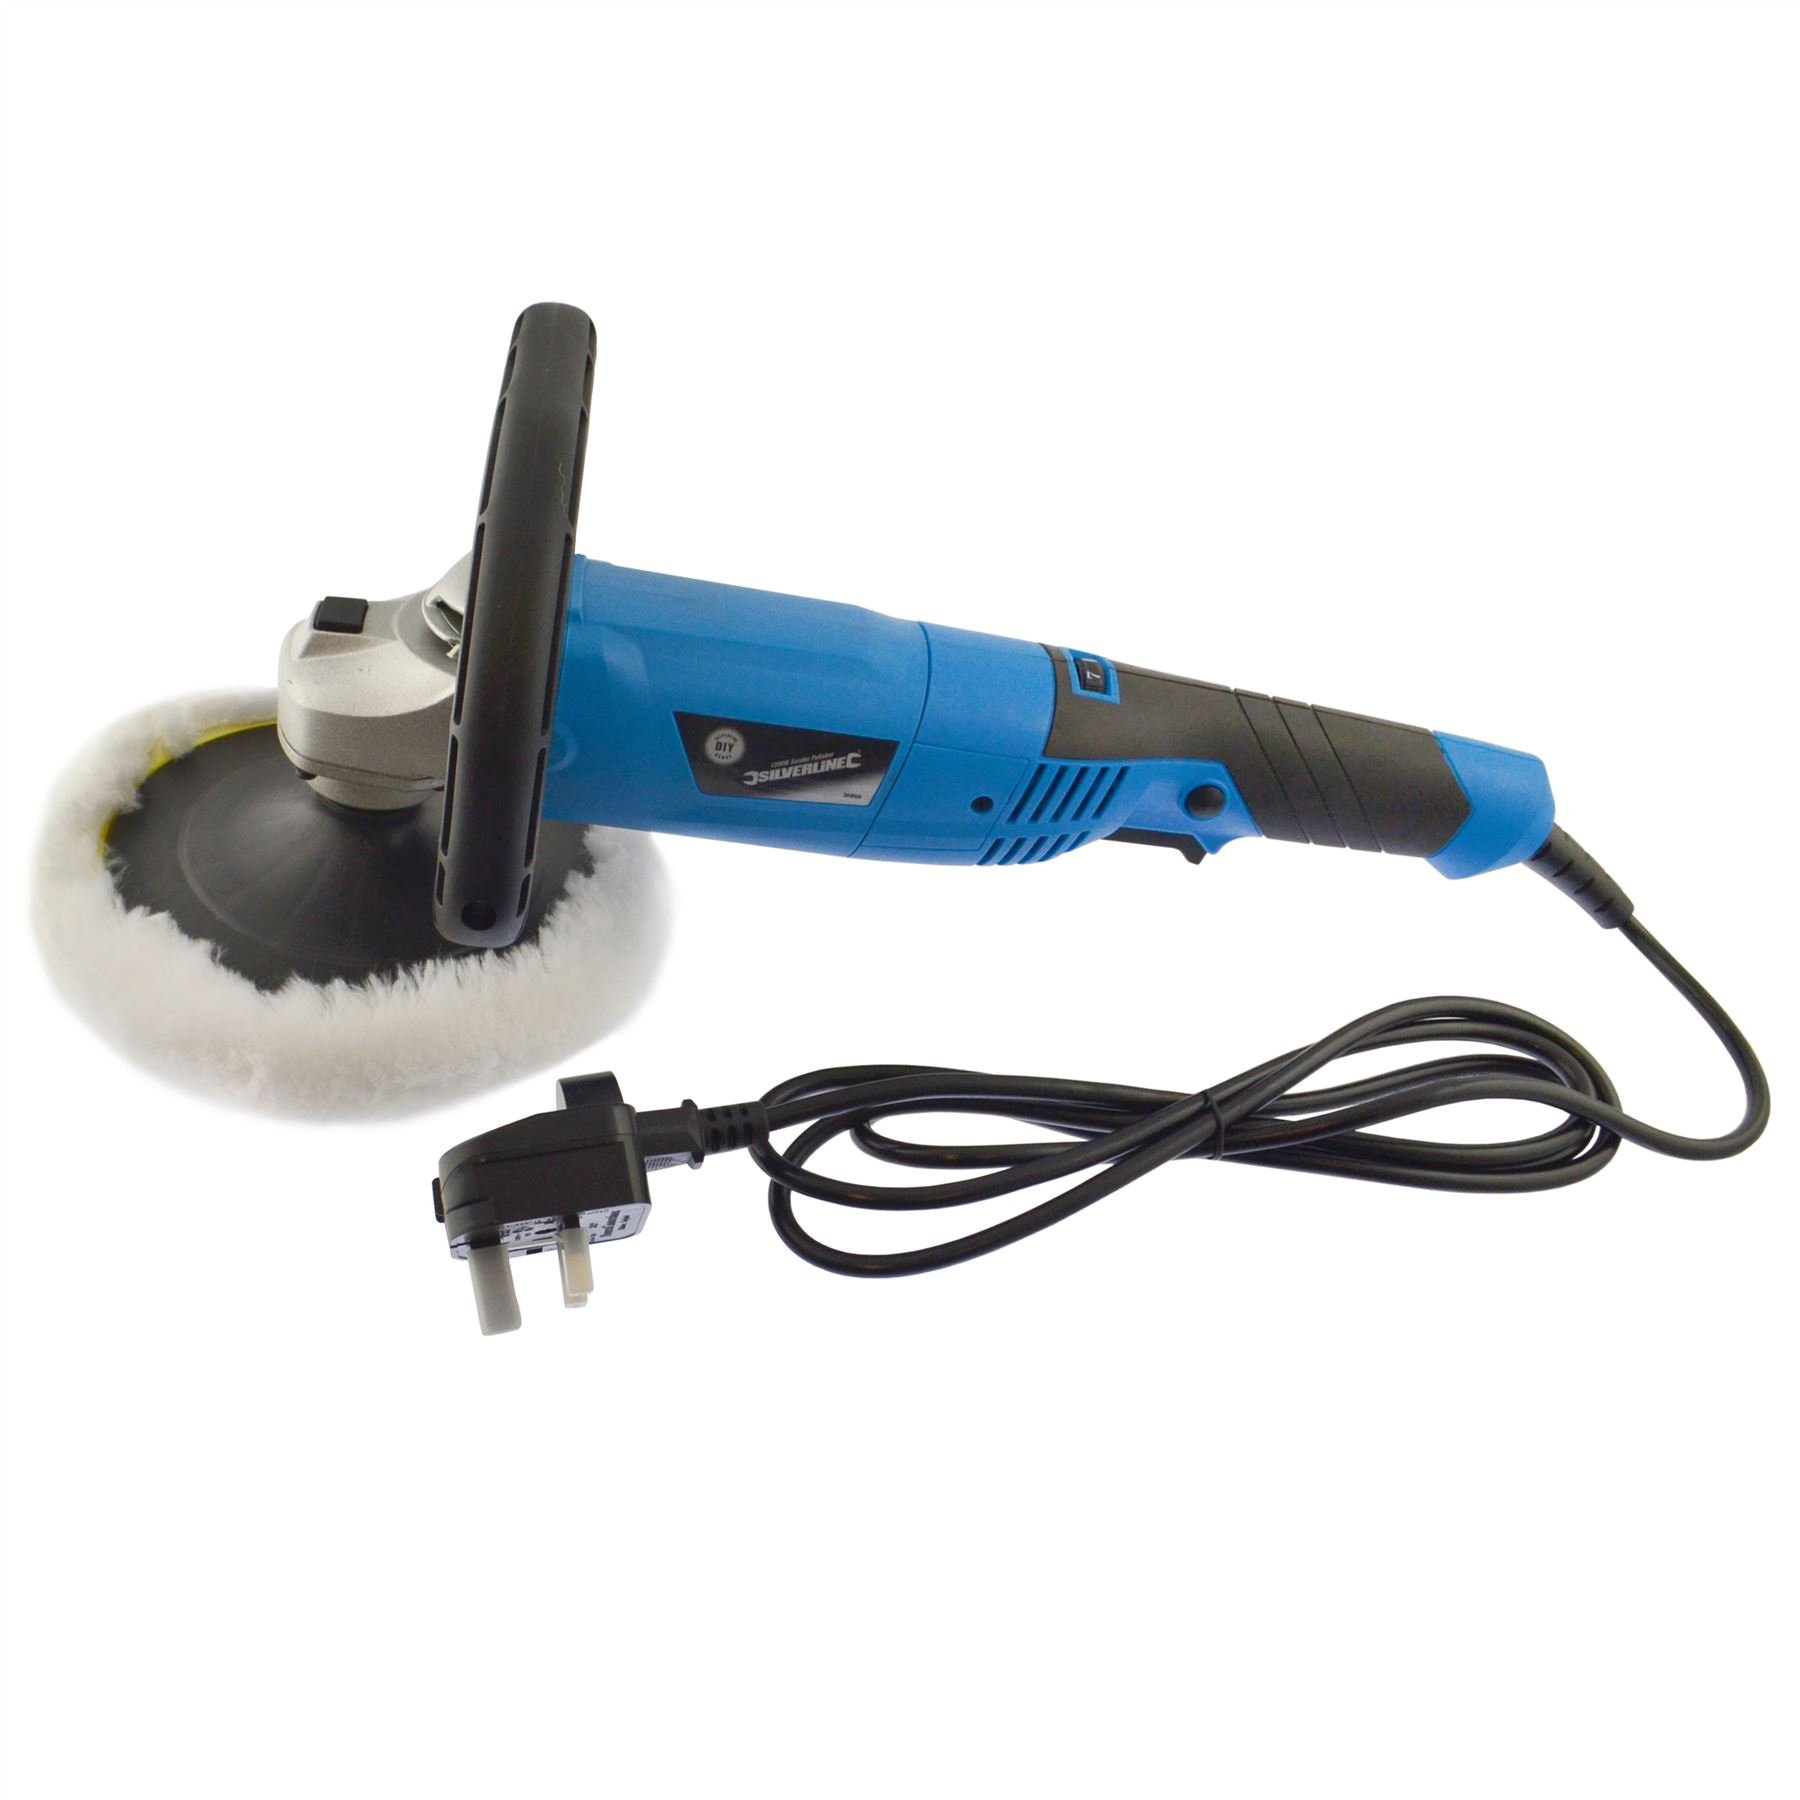 AB Tools-Silverline 180mm Machine Polisher 1200W Electric Variable Speed Rotary Car Buffer SIL126 by AB Tools-Silverline (Image #1)